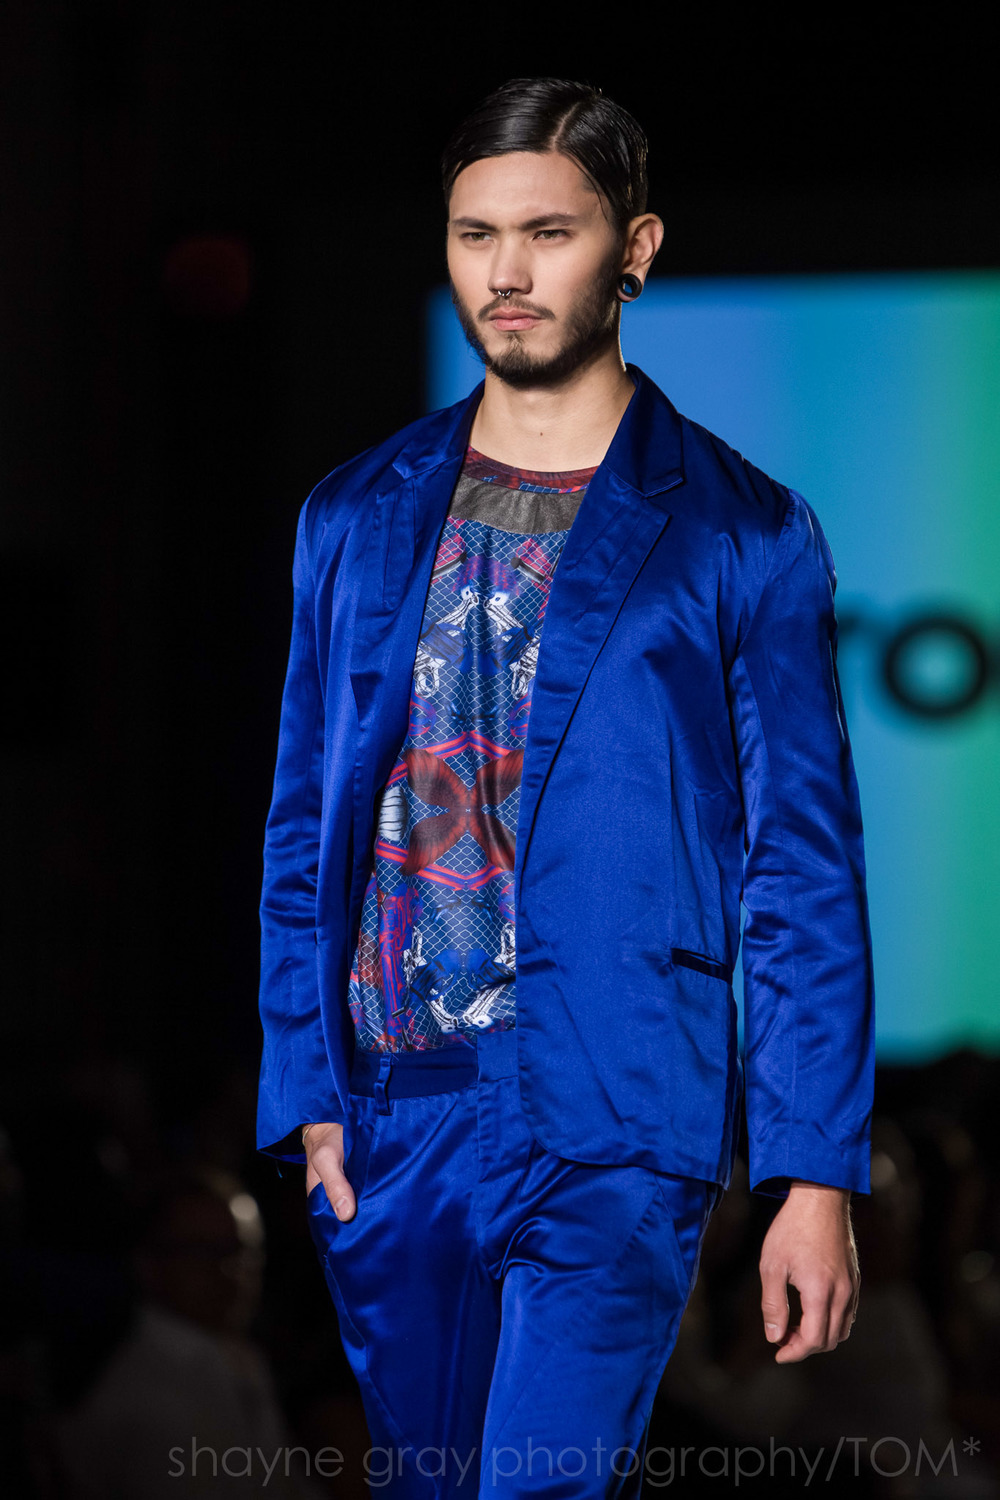 Shayne-Gray-Toronto-men's-fashion_week-TOM-paul-nathaphol-7967.jpg